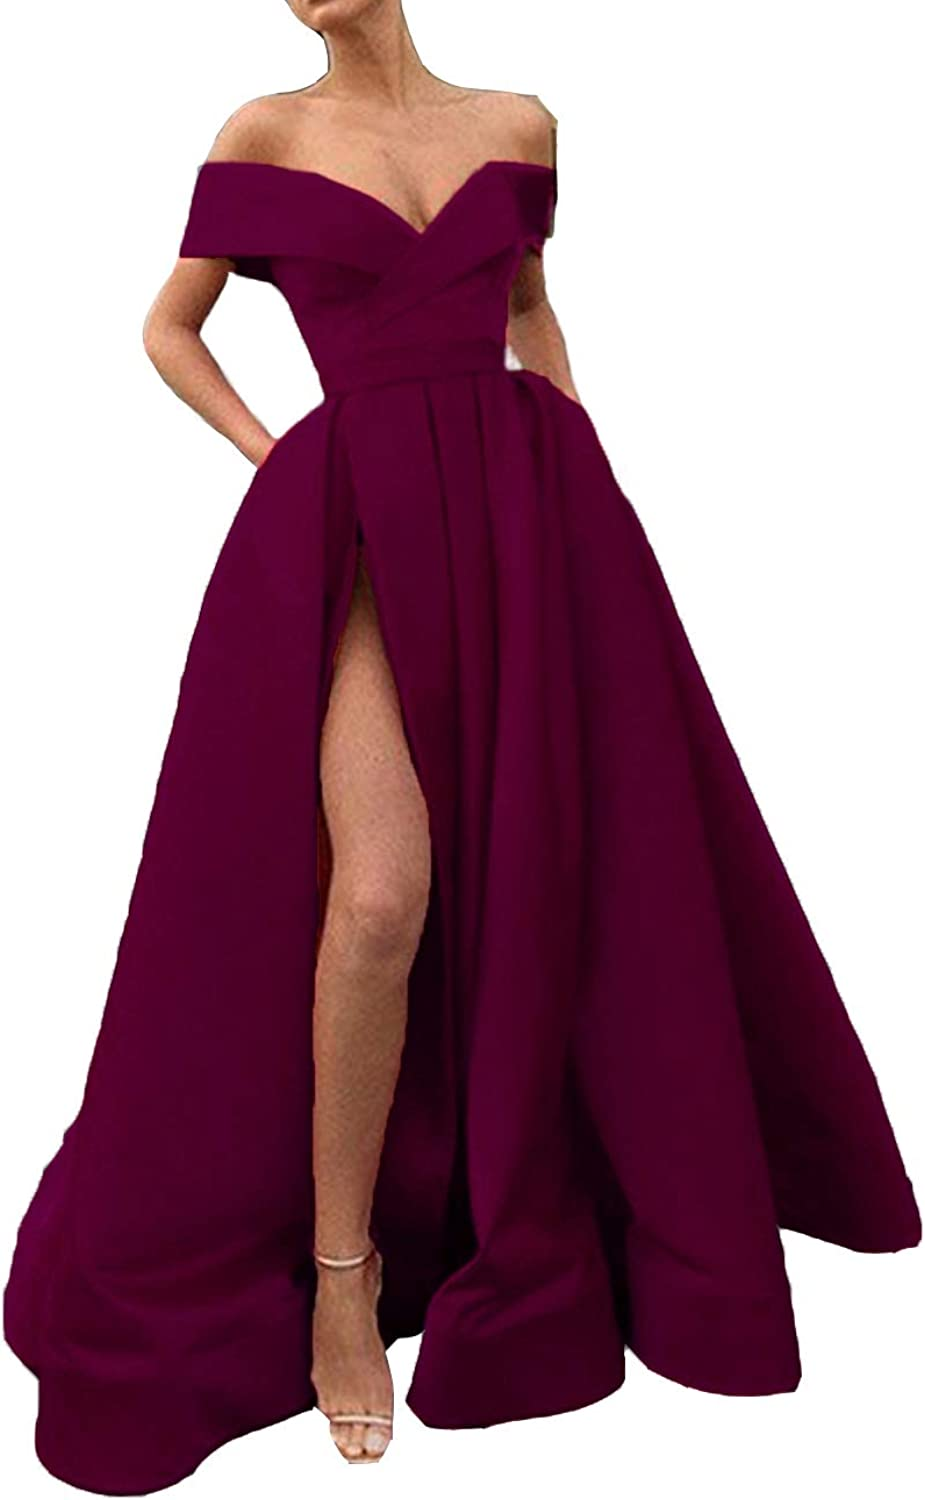 FTBY Spaghetti Straps Prom Dress 2019 with Slit Evening Dress Long Satin Formal Gown